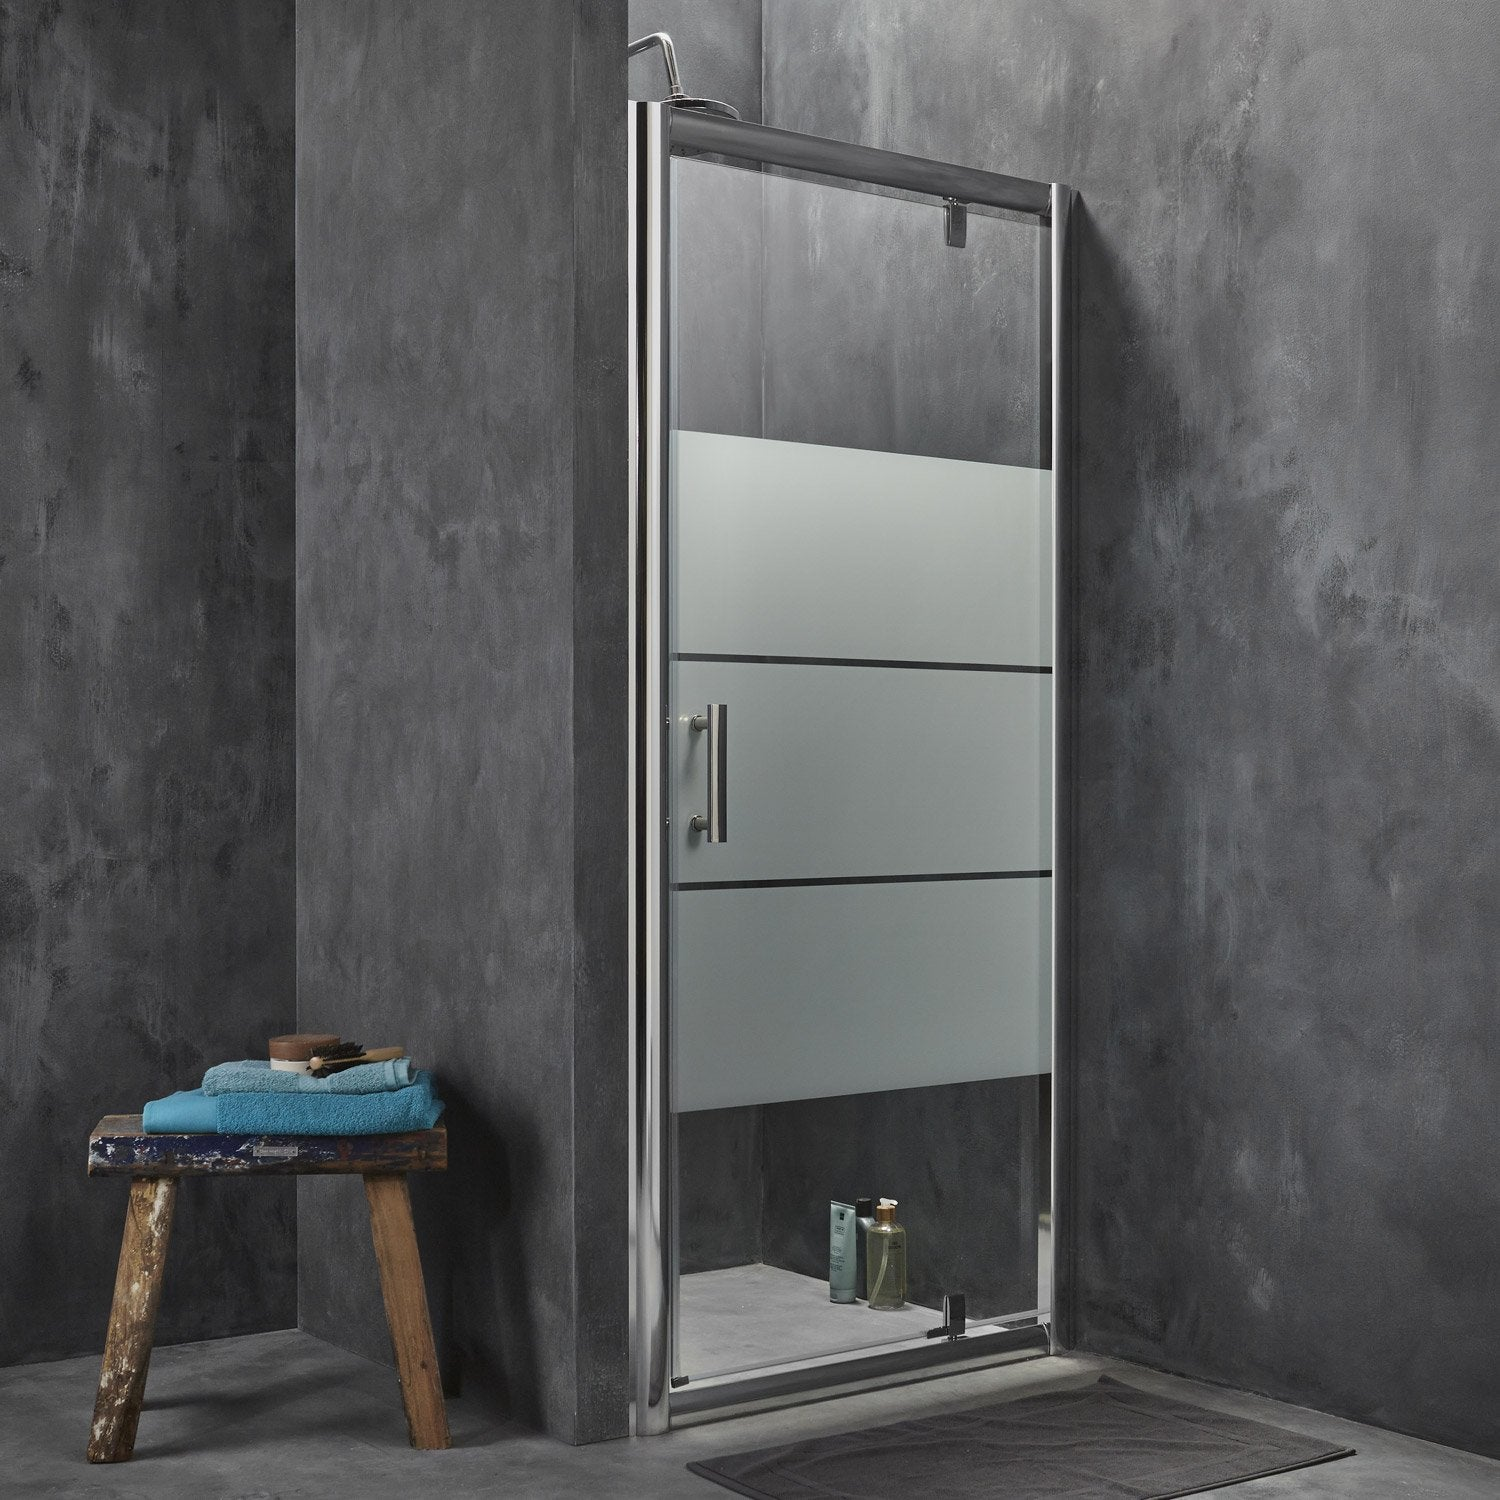 porte de douche pivotante optima2 leroy merlin. Black Bedroom Furniture Sets. Home Design Ideas